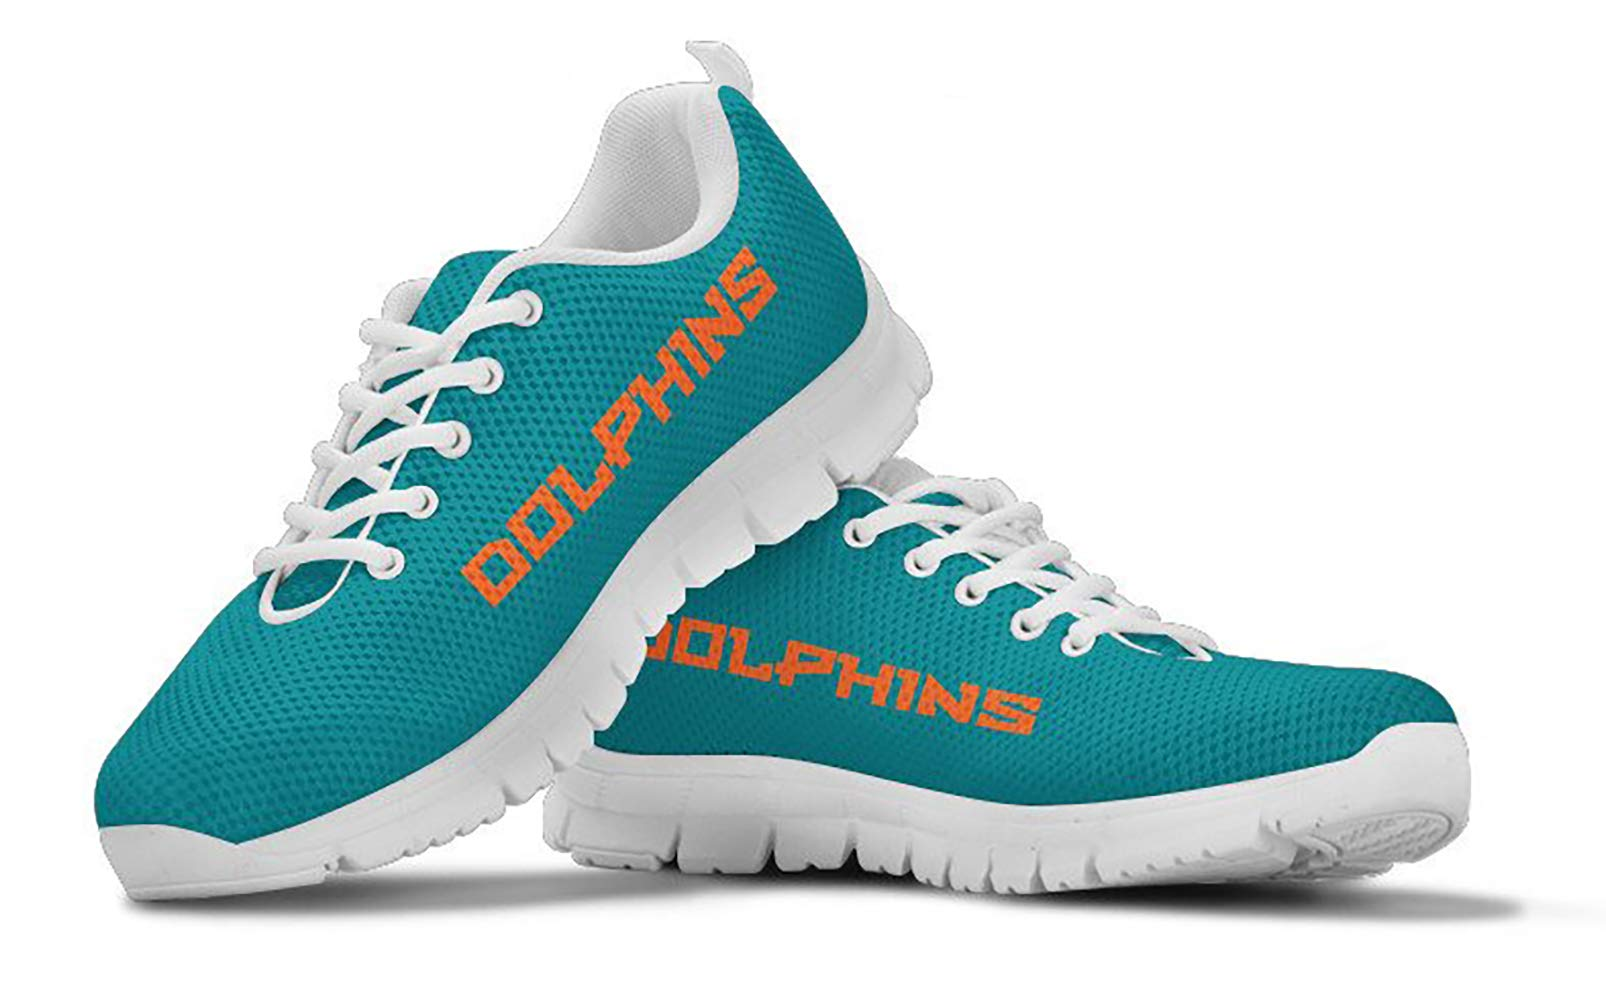 Miami Dolphins Themed Casual Athletic Running Shoe Mens Womens Sizes Football Apparel and Gifts for Men Women Fan NFL…